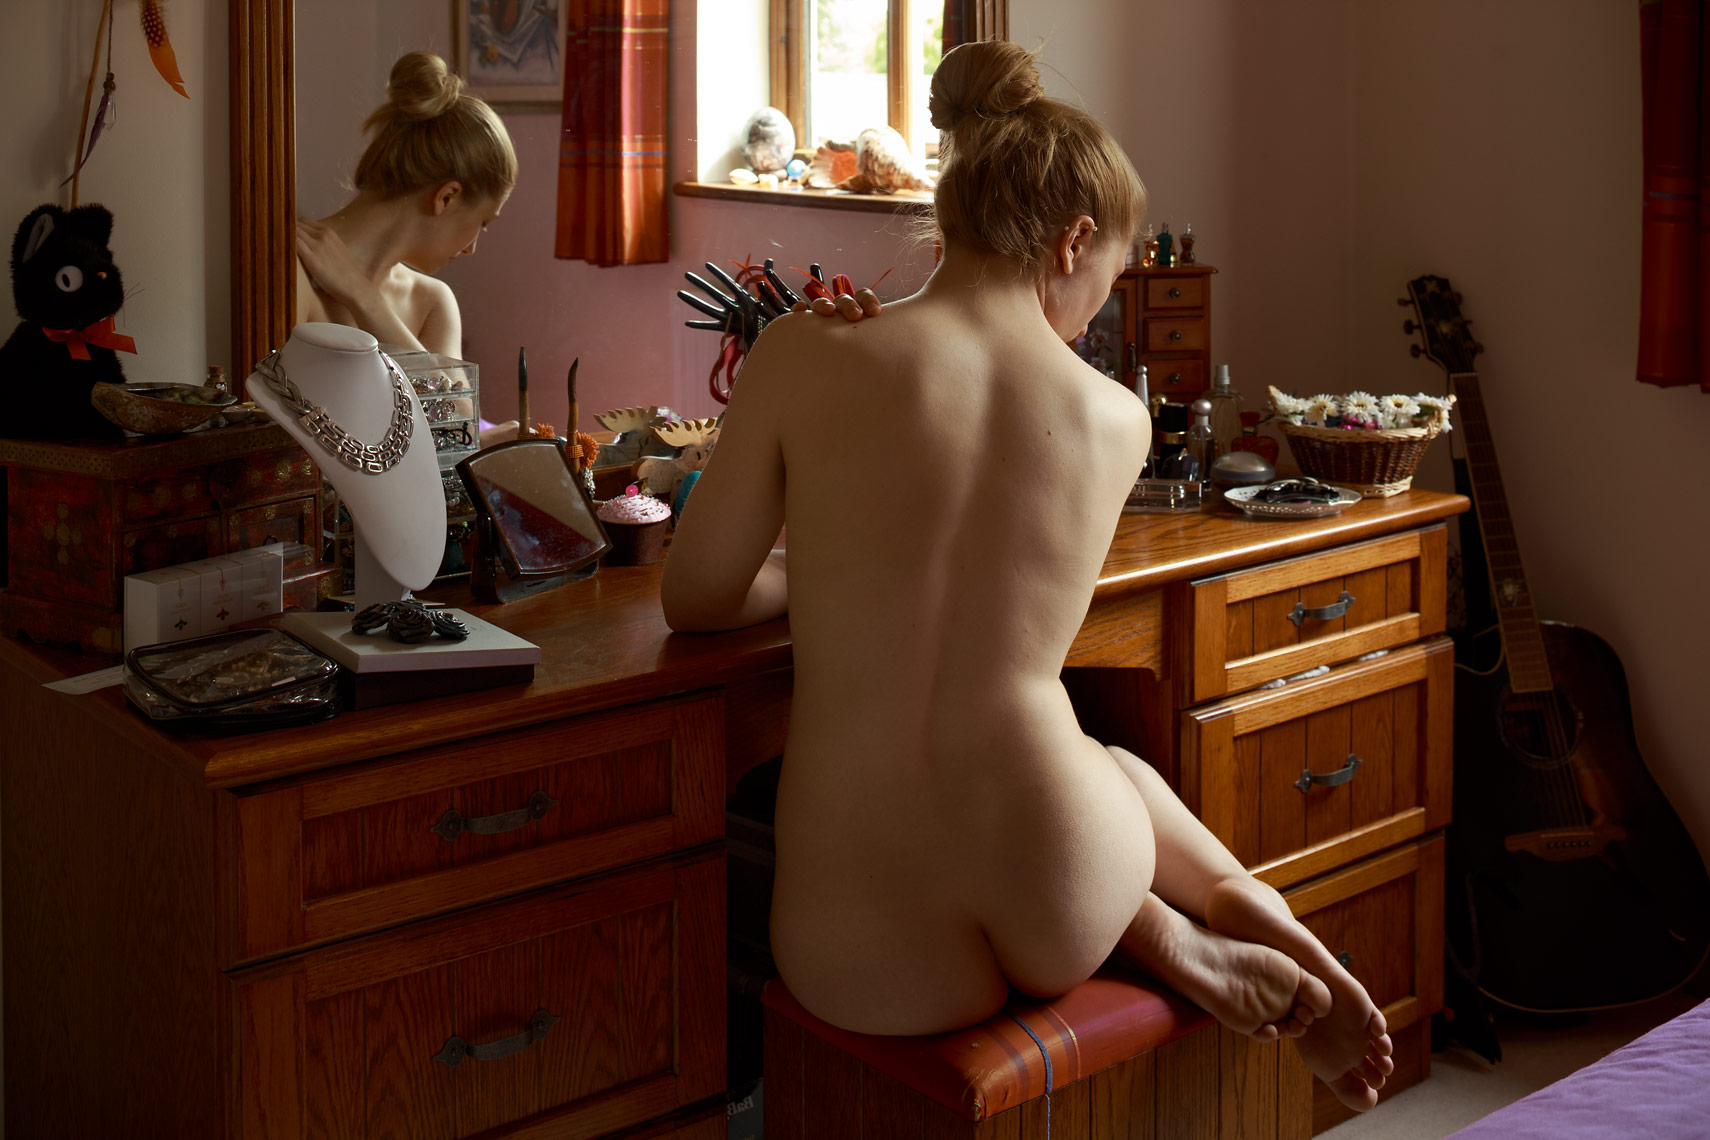 Domestic Nudes 7 - Rebecca - by Simon Stanmore.jpg